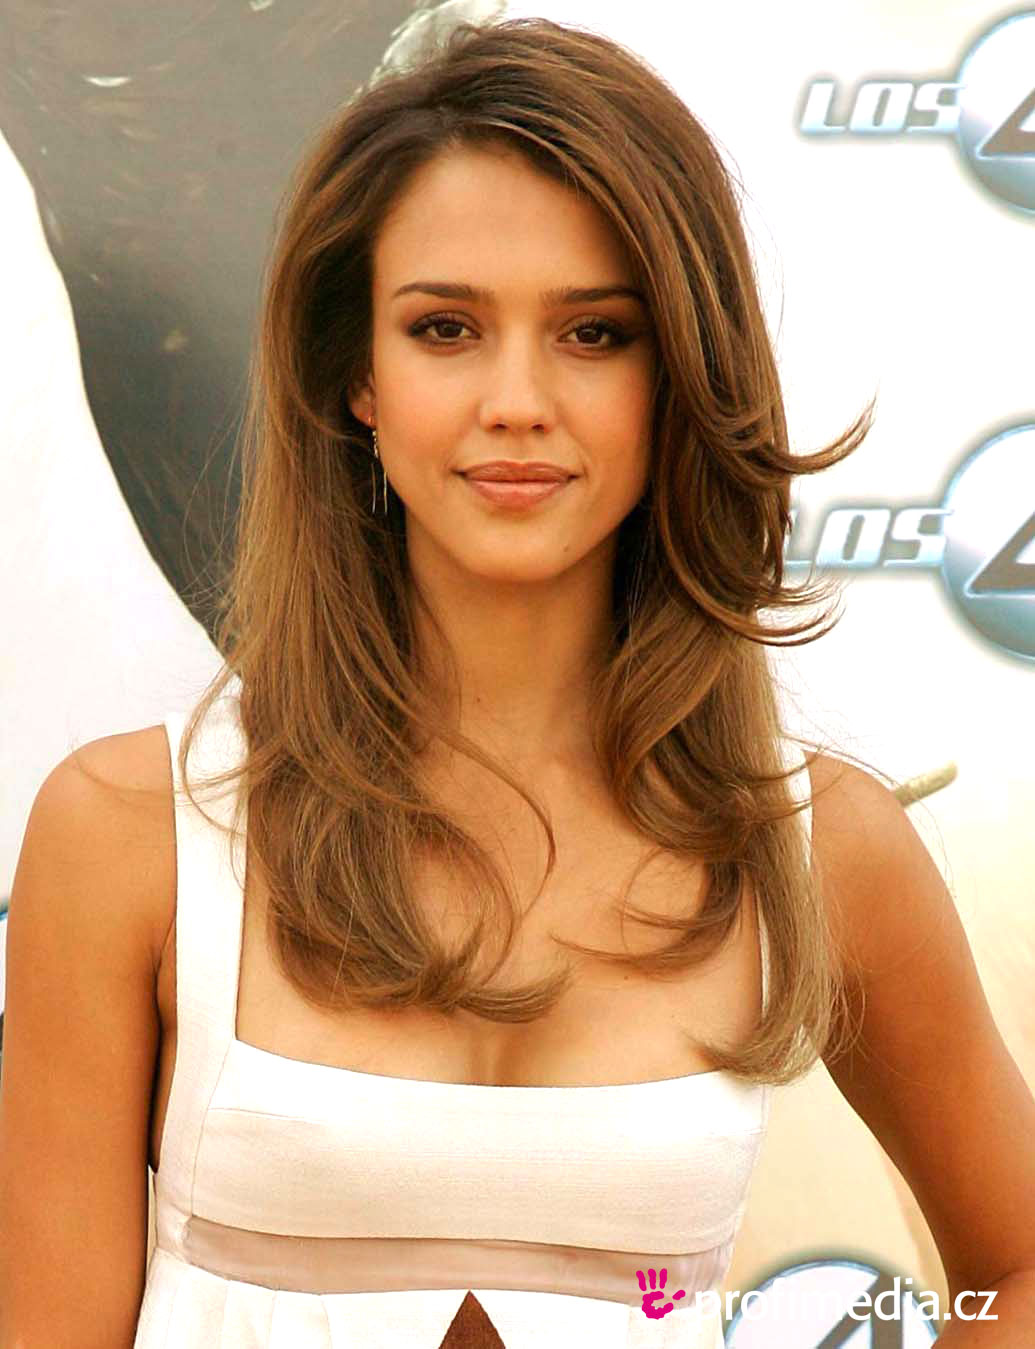 Download this Prom Hairstyle Jessica Alba picture